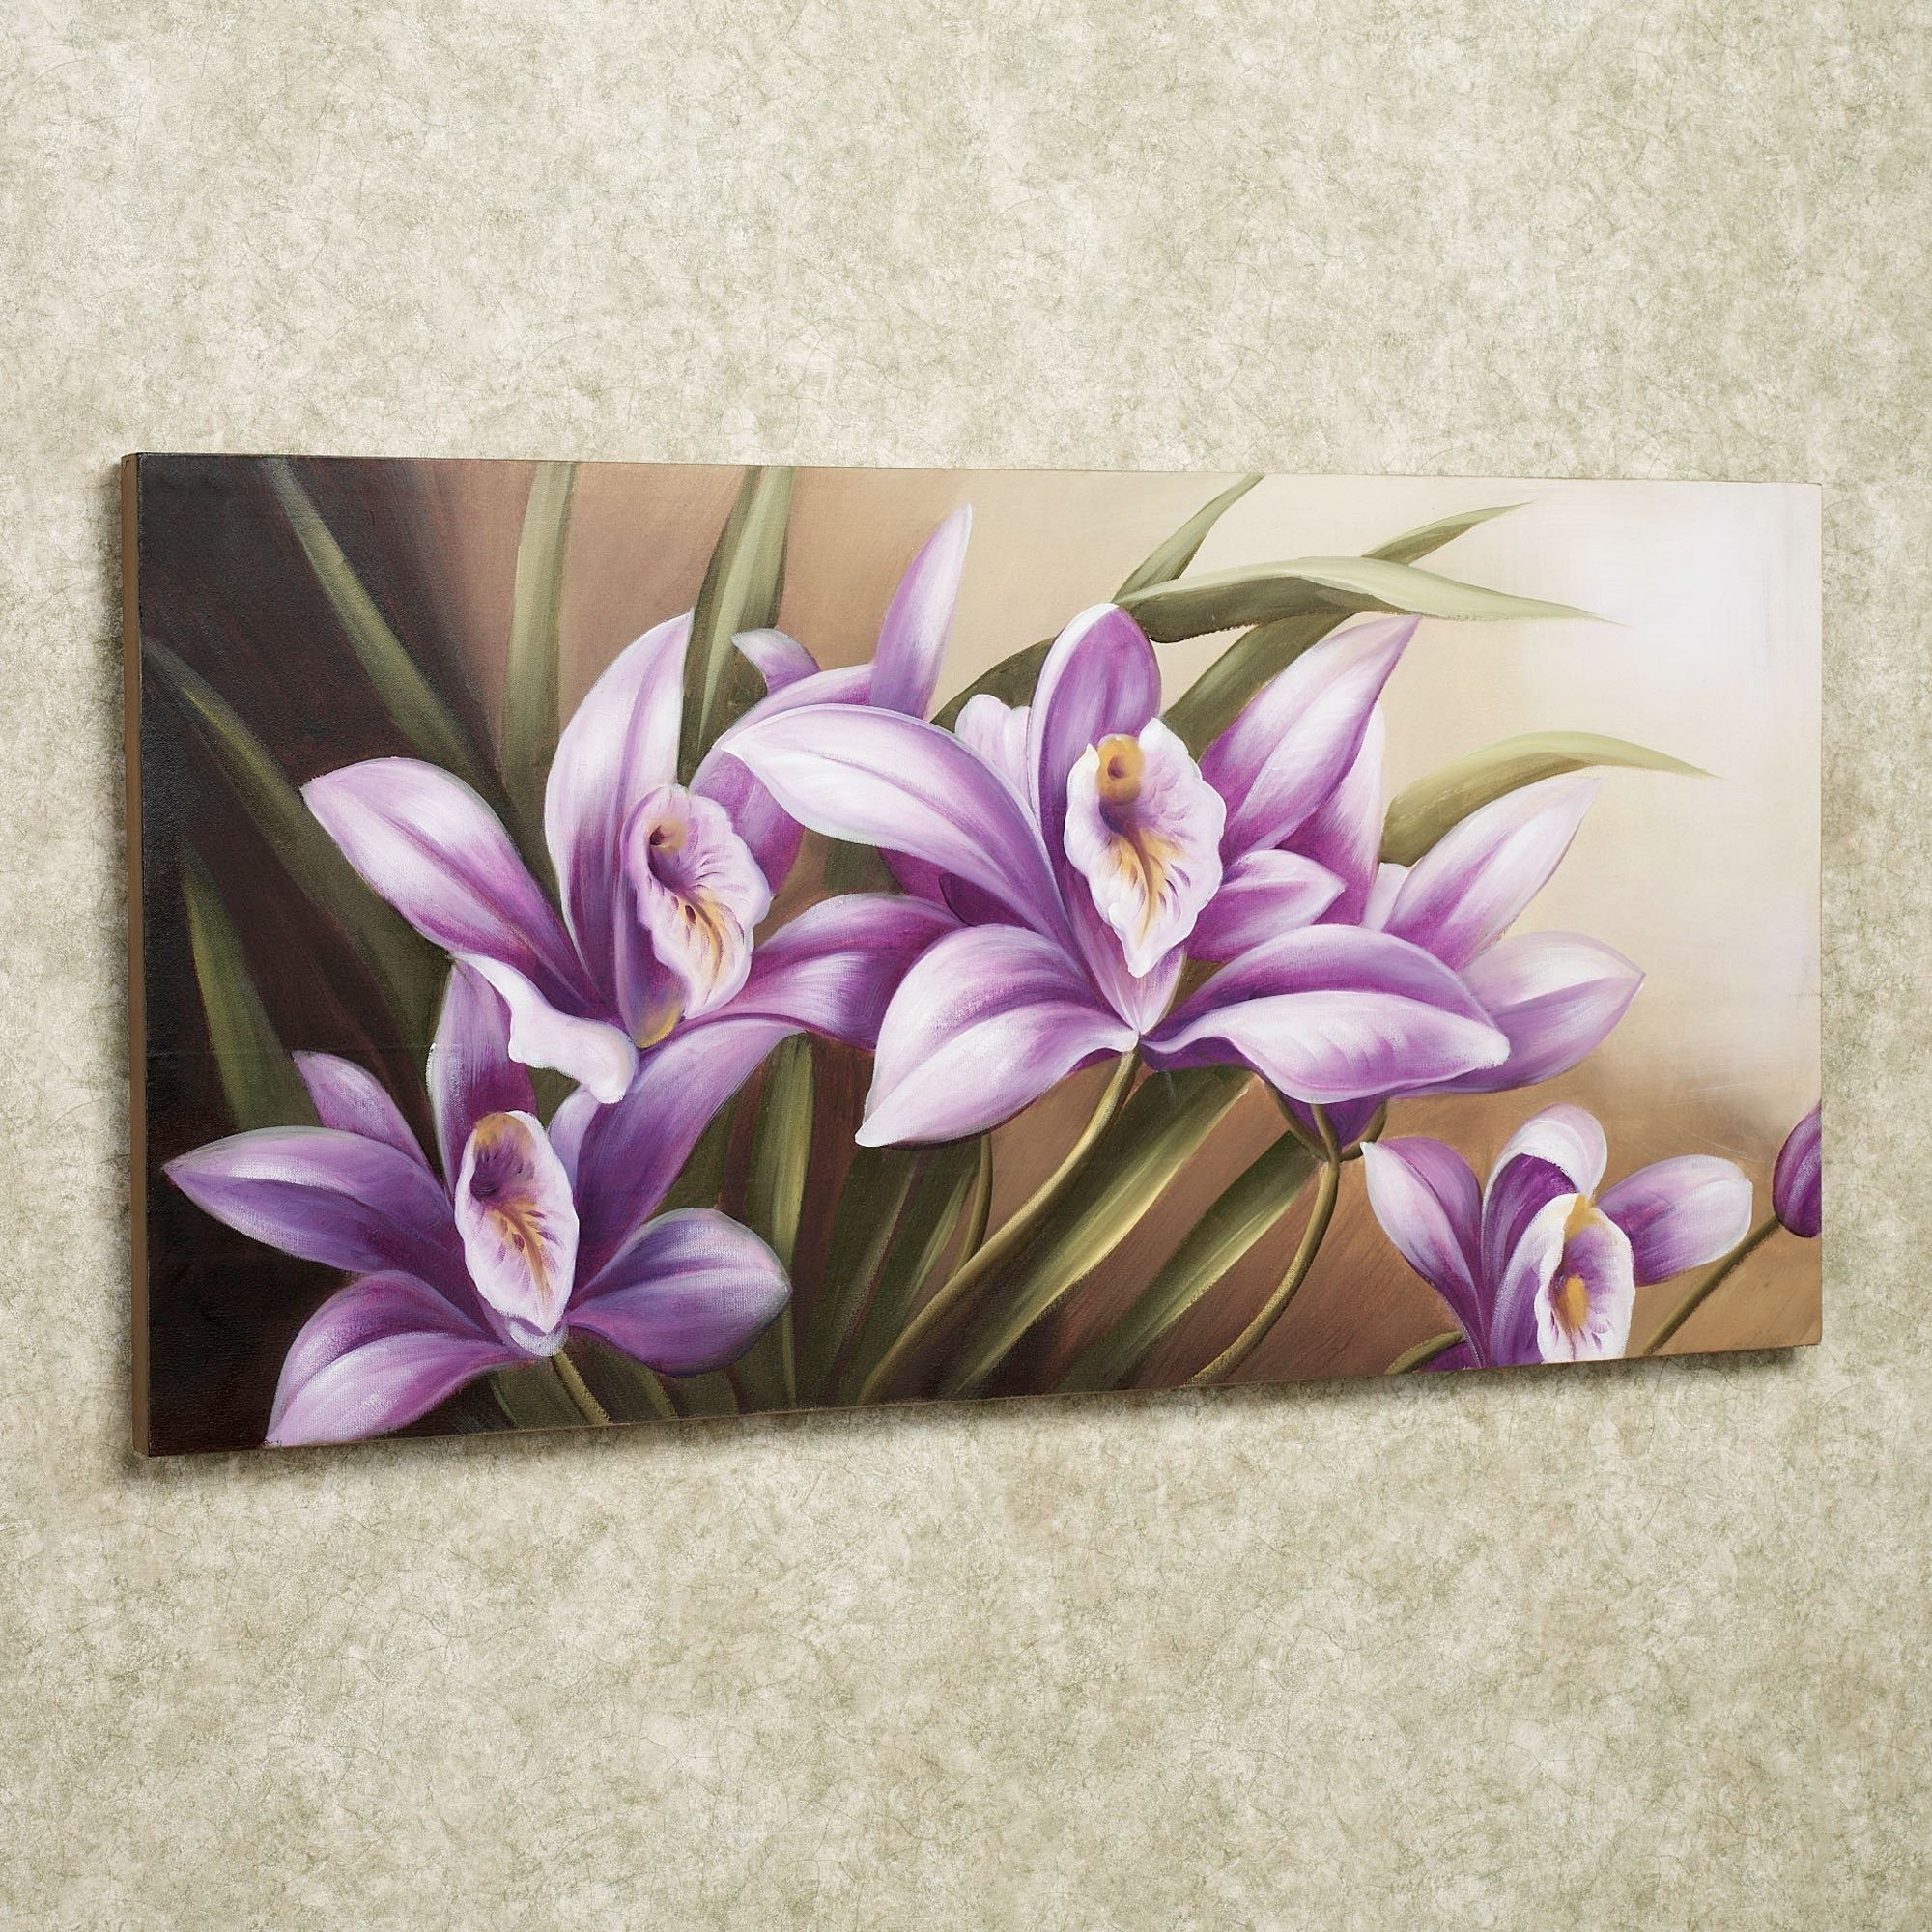 Wild Orchid Handpainted Floral Canvas Wall Art Throughout Most Recently Released Floral Wall Art (View 6 of 20)